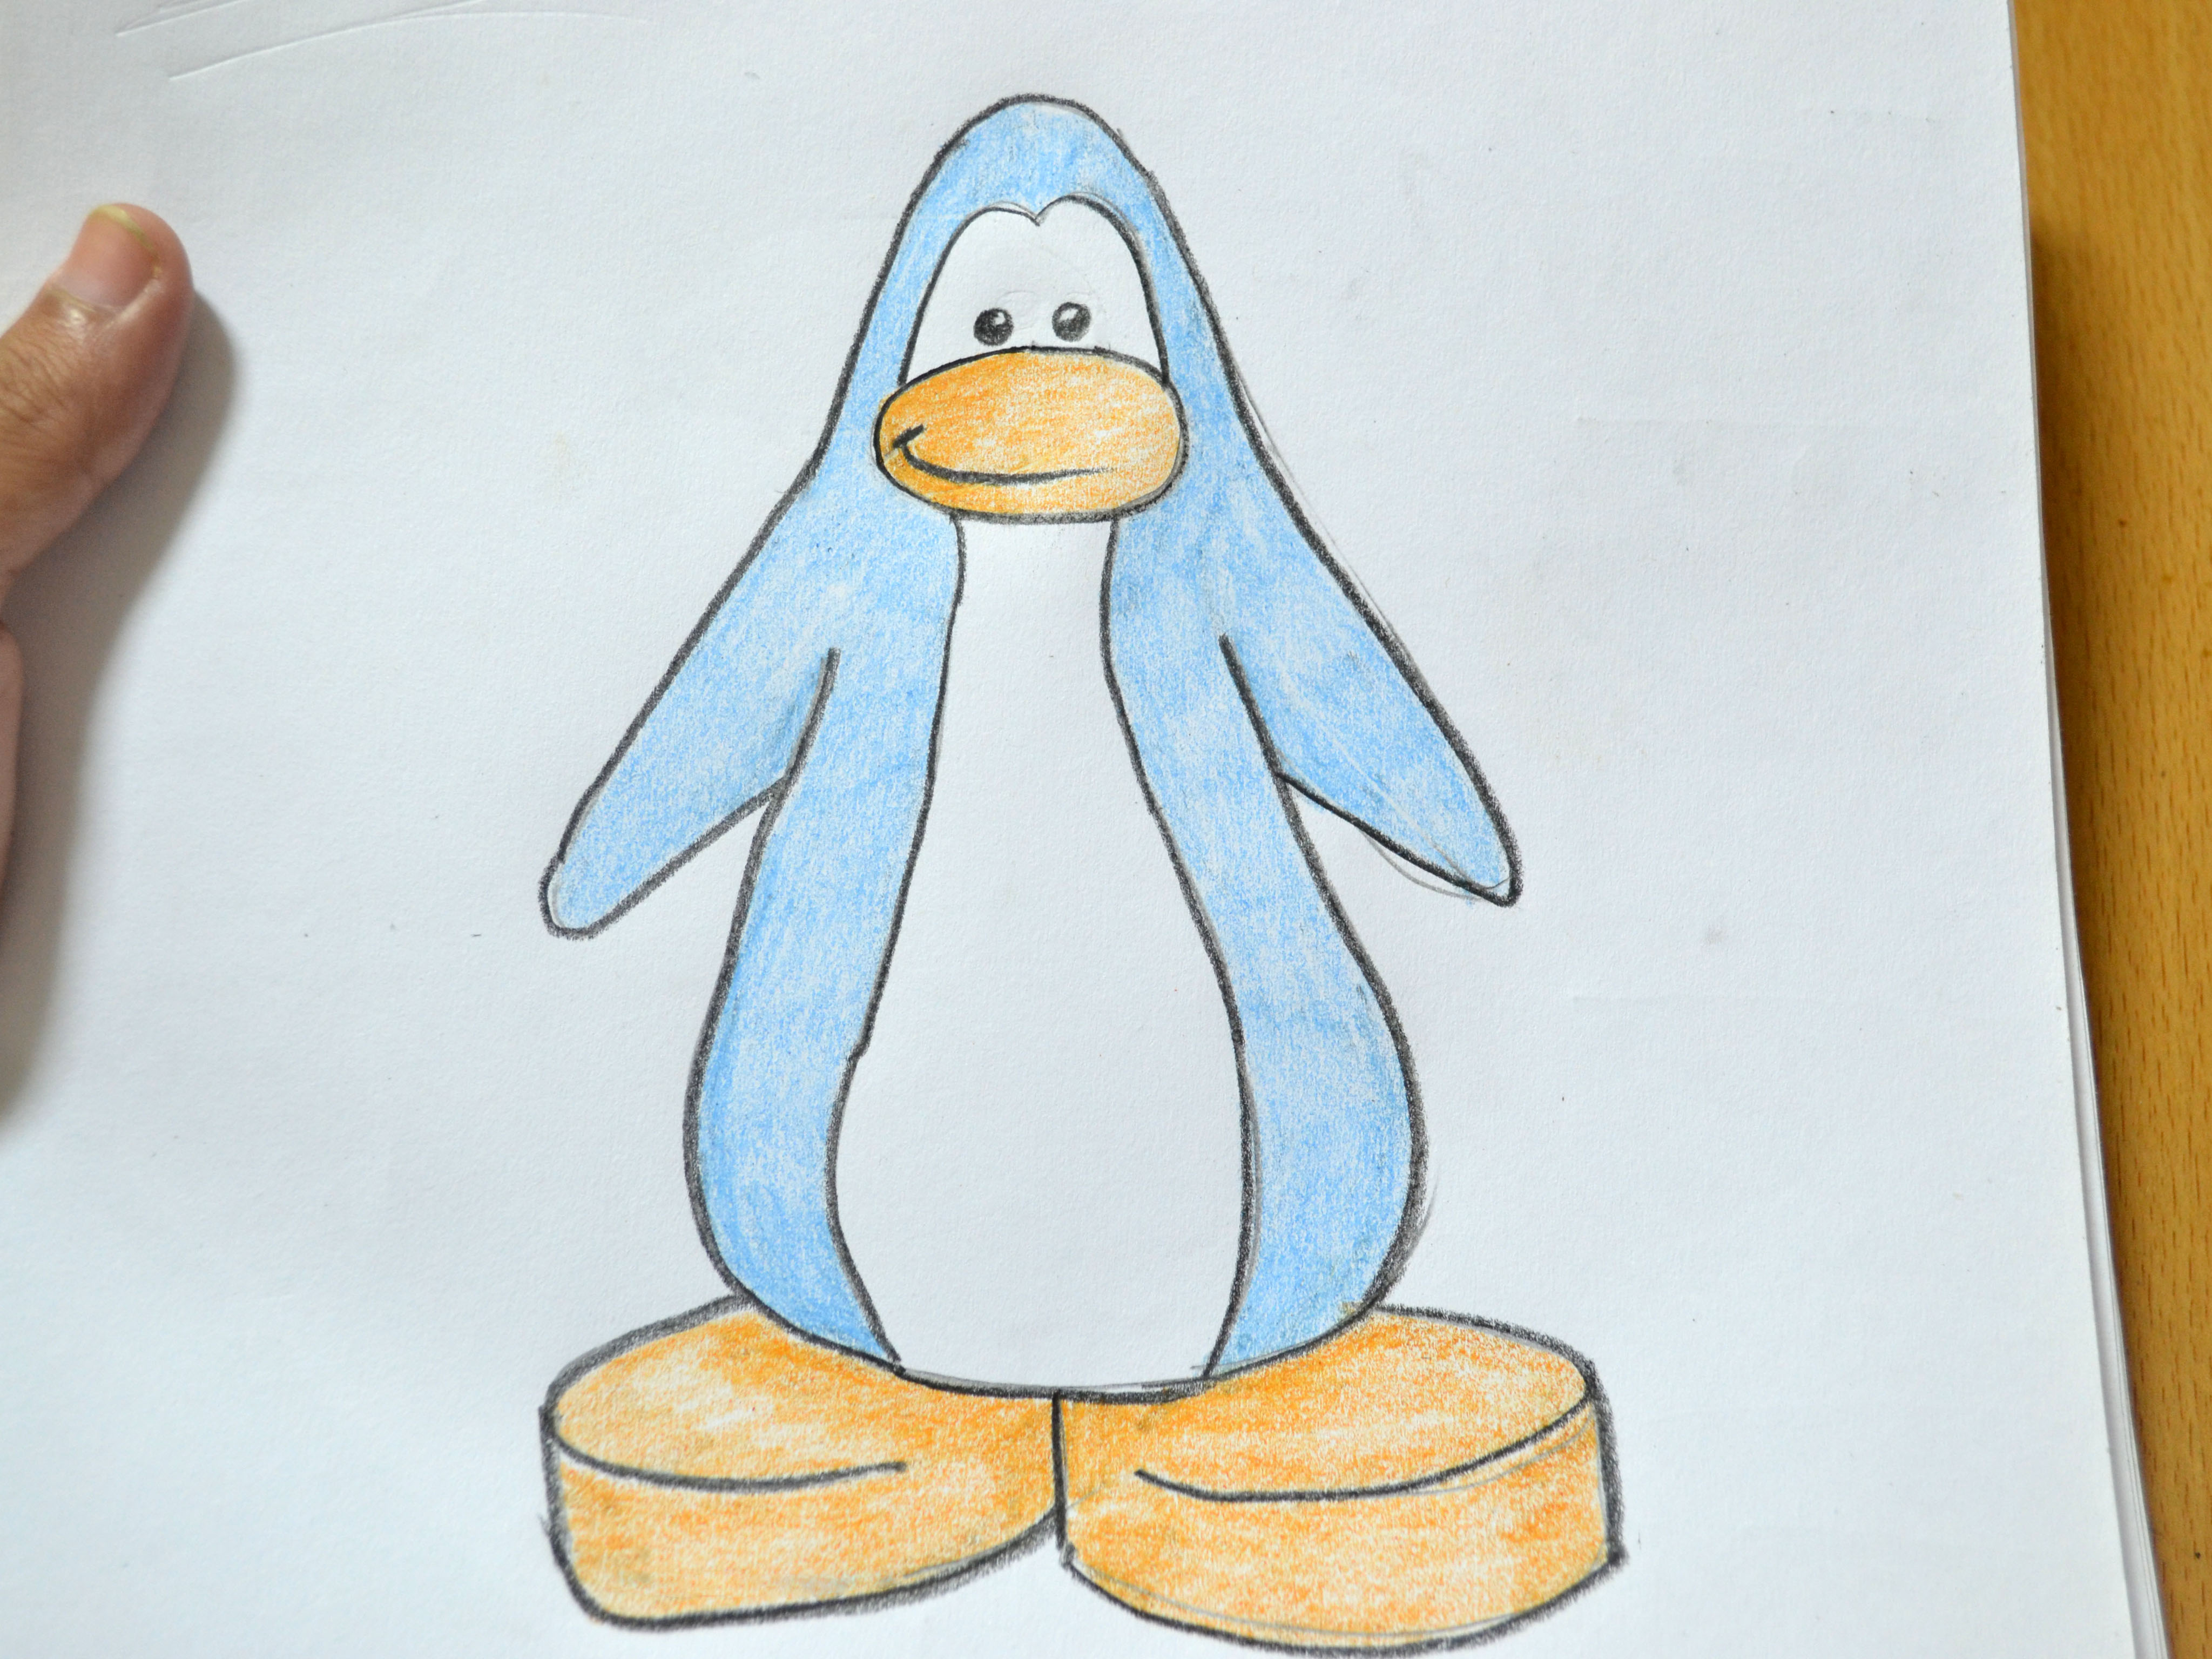 4096x3072 How To Draw A Club Penguin Penguin 8 Steps (With Pictures)